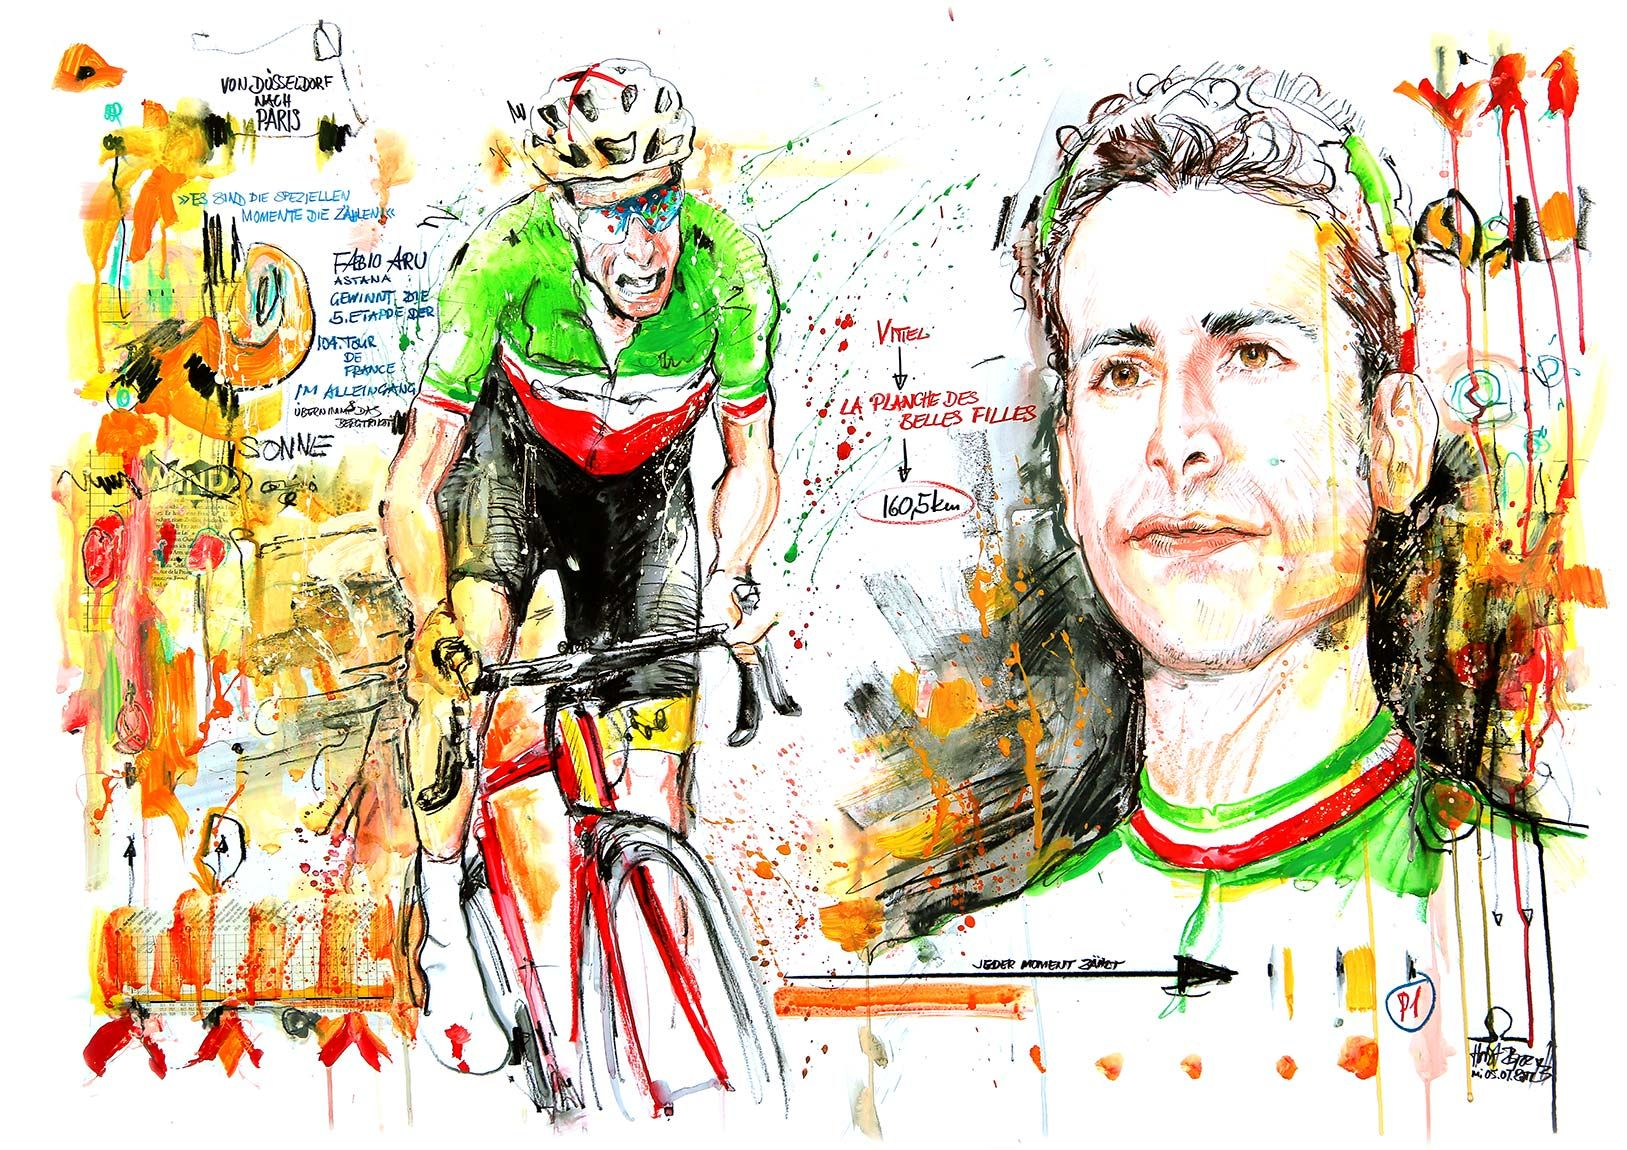 Fabio Aru Team Astana Bike Poster Bike Art Cycling Art